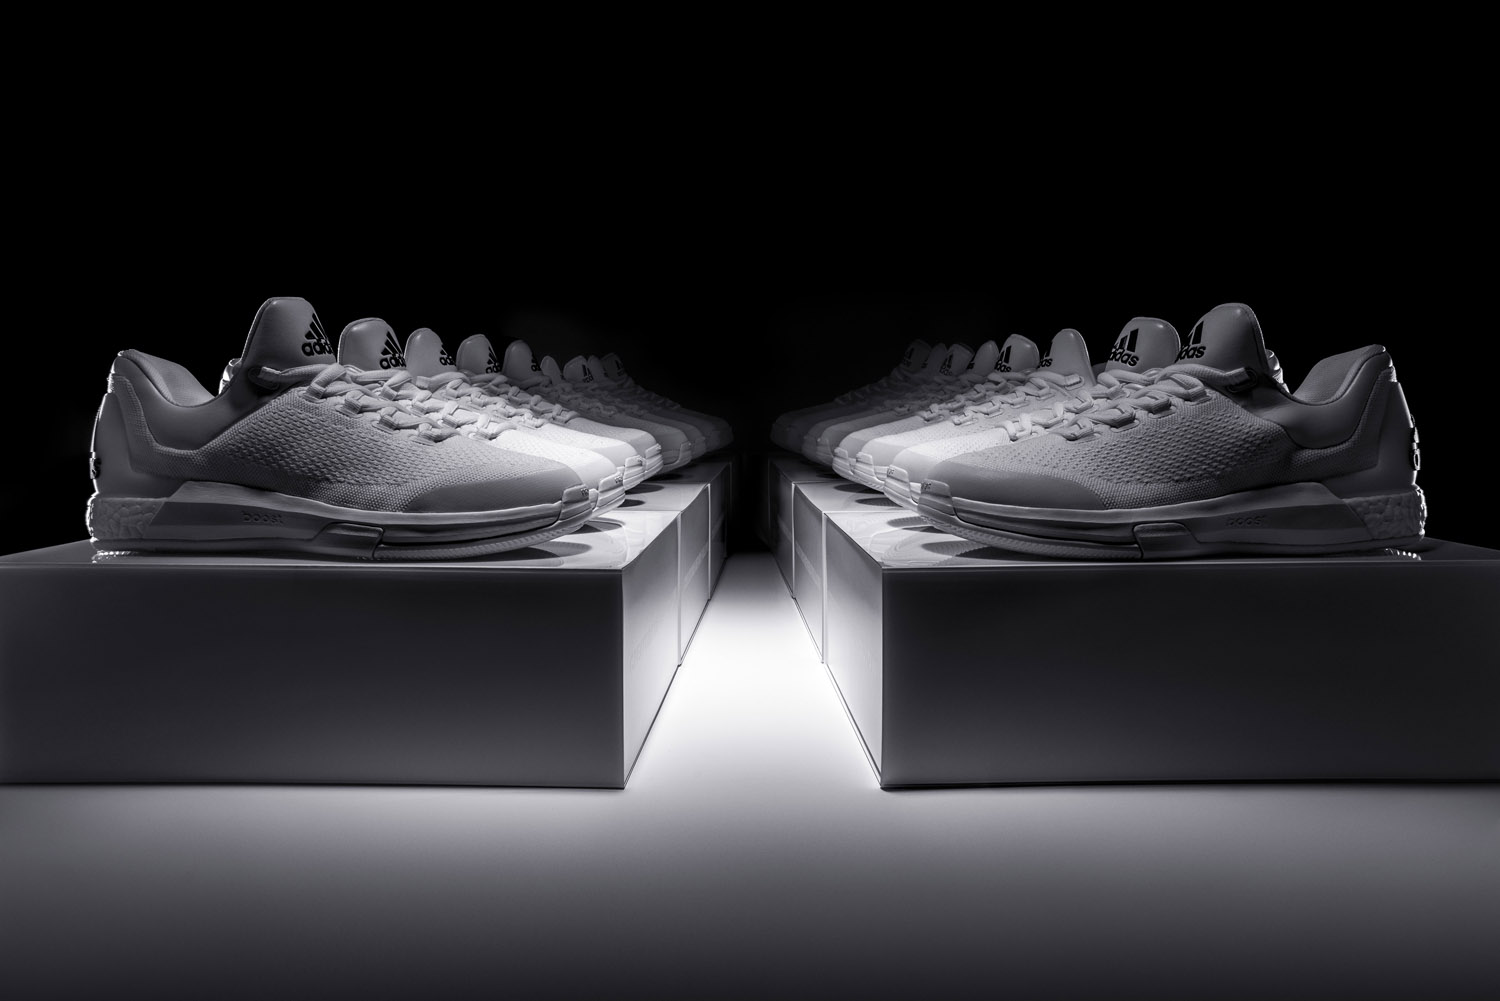 2570e33f43bdf Adidas Is Only Releasing 100 Pairs of These James Harden Sneakers ...